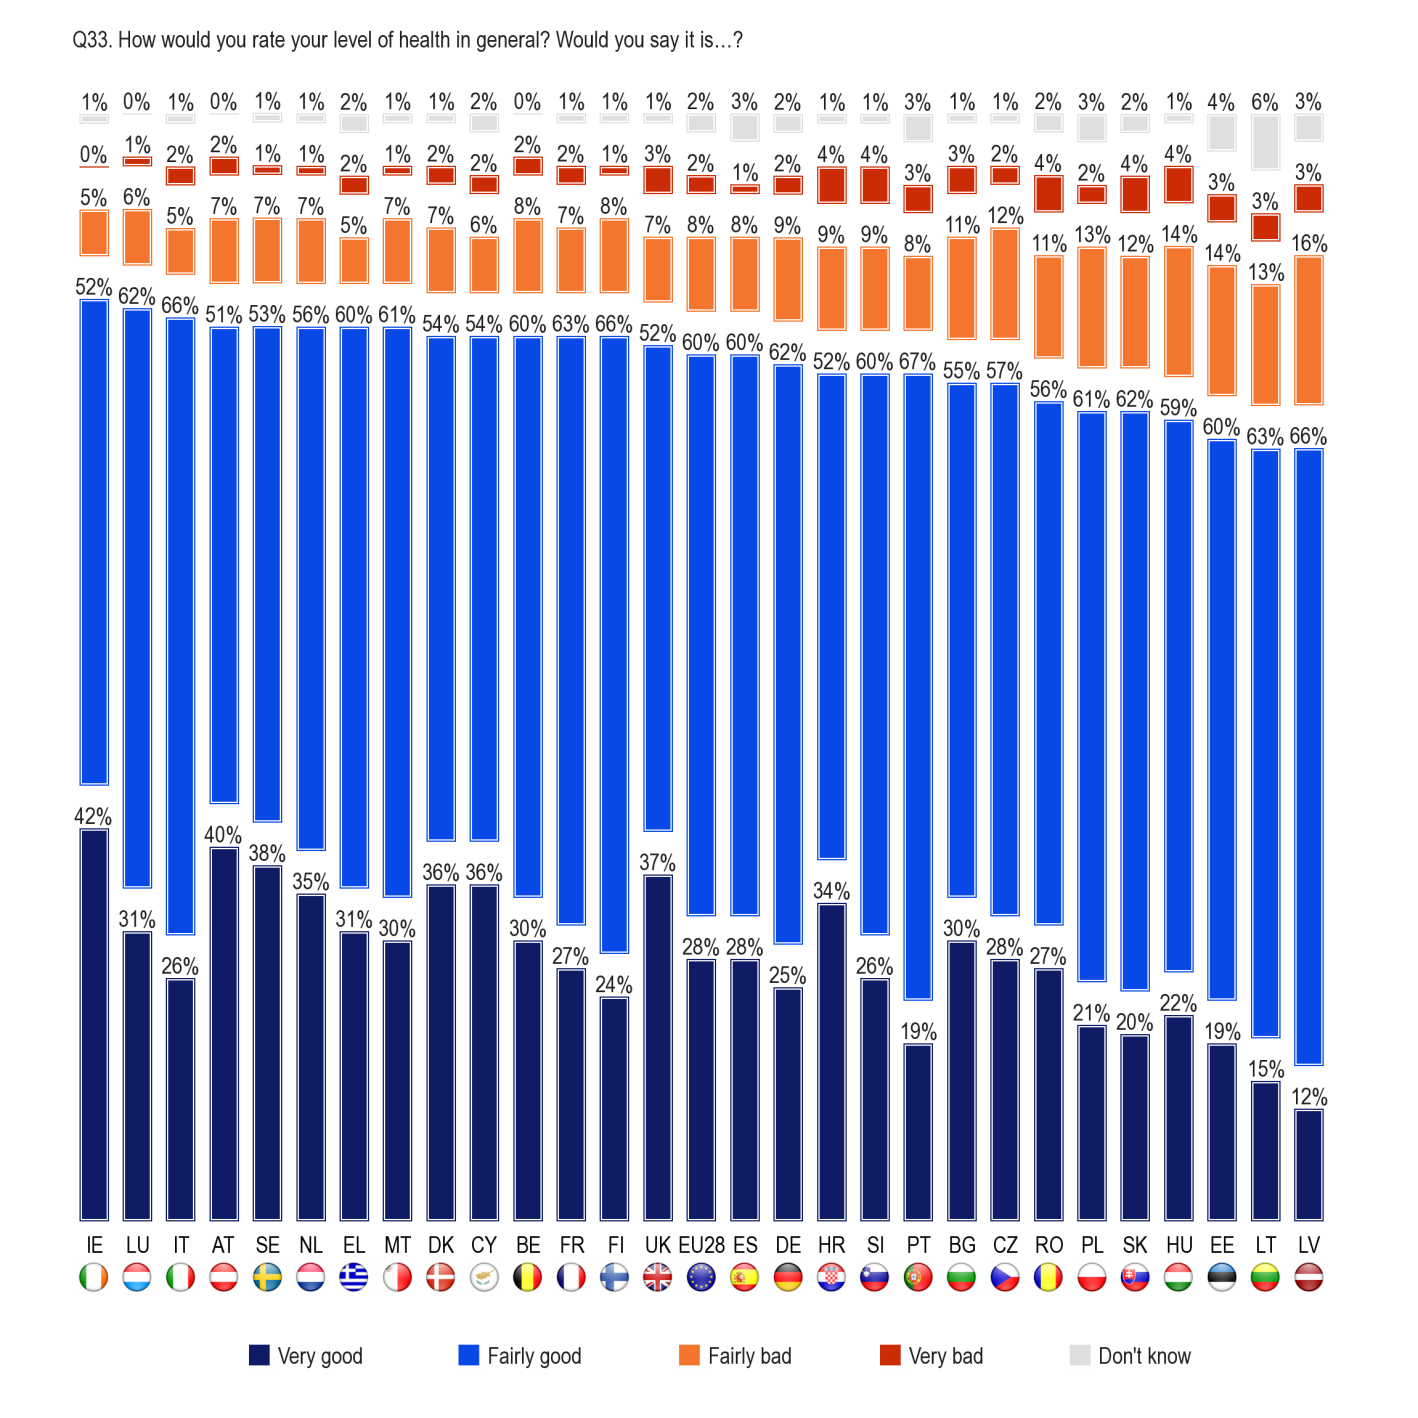 FLASH EUROBAROMETER In 13 Member States, at least 90% of people consider their level of health in general as good.